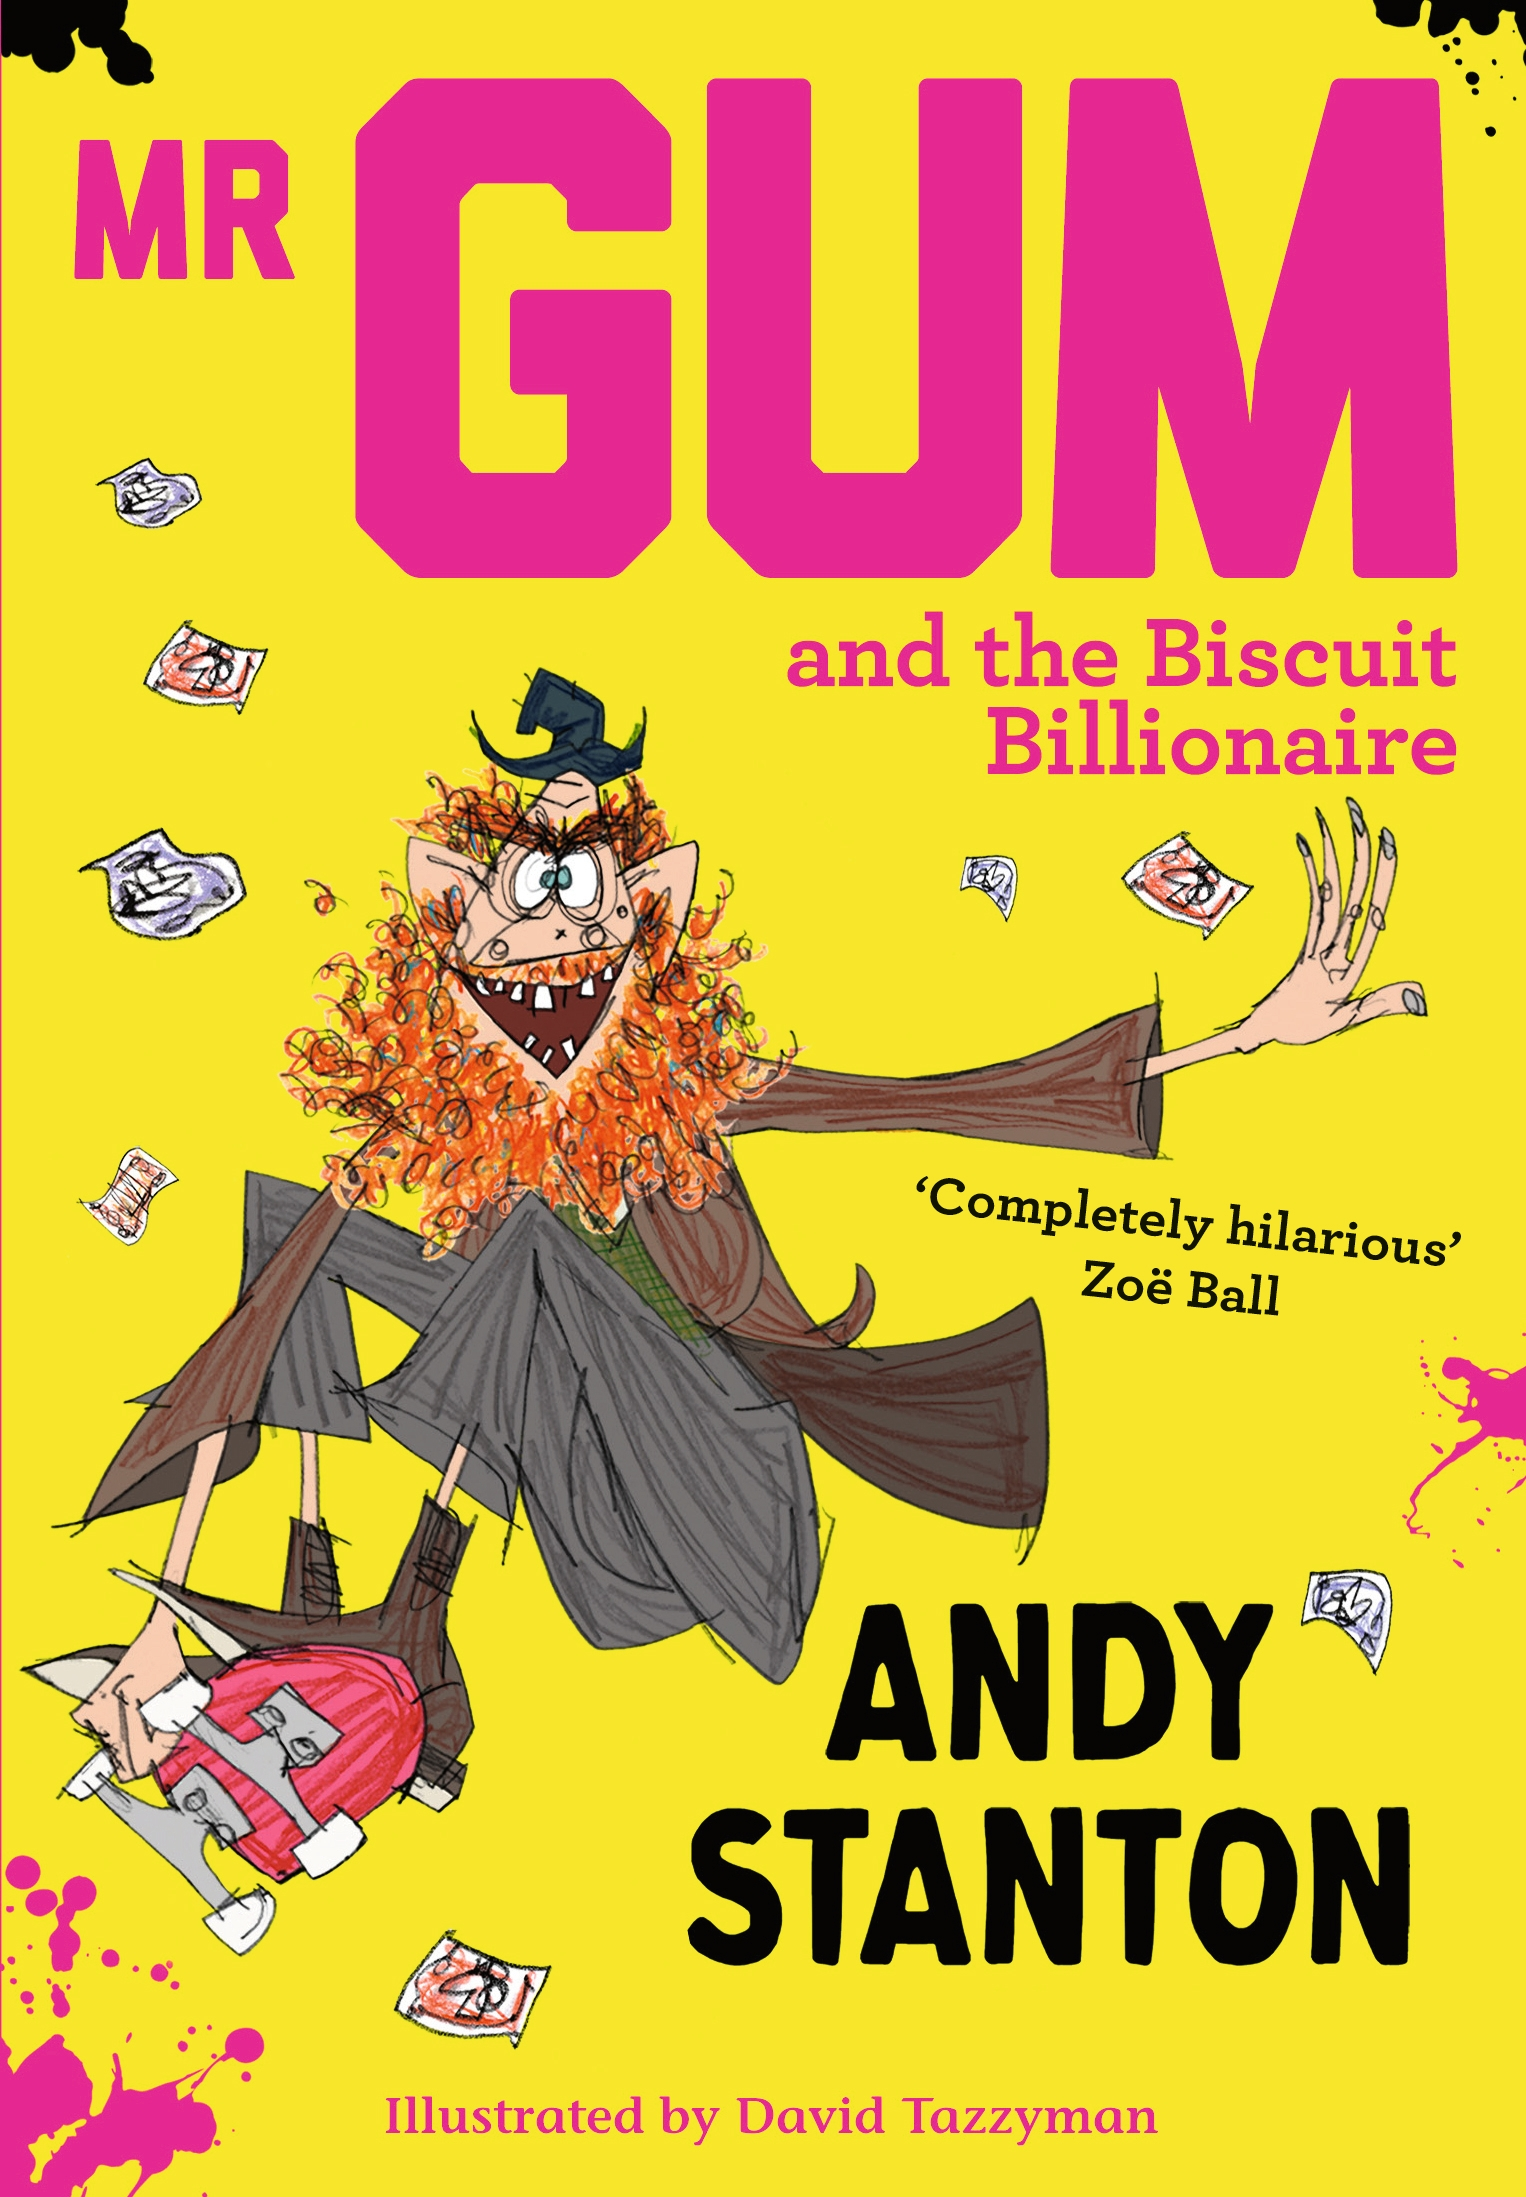 Watch Andy Read Mr Gum and the Biscuit Billionaire